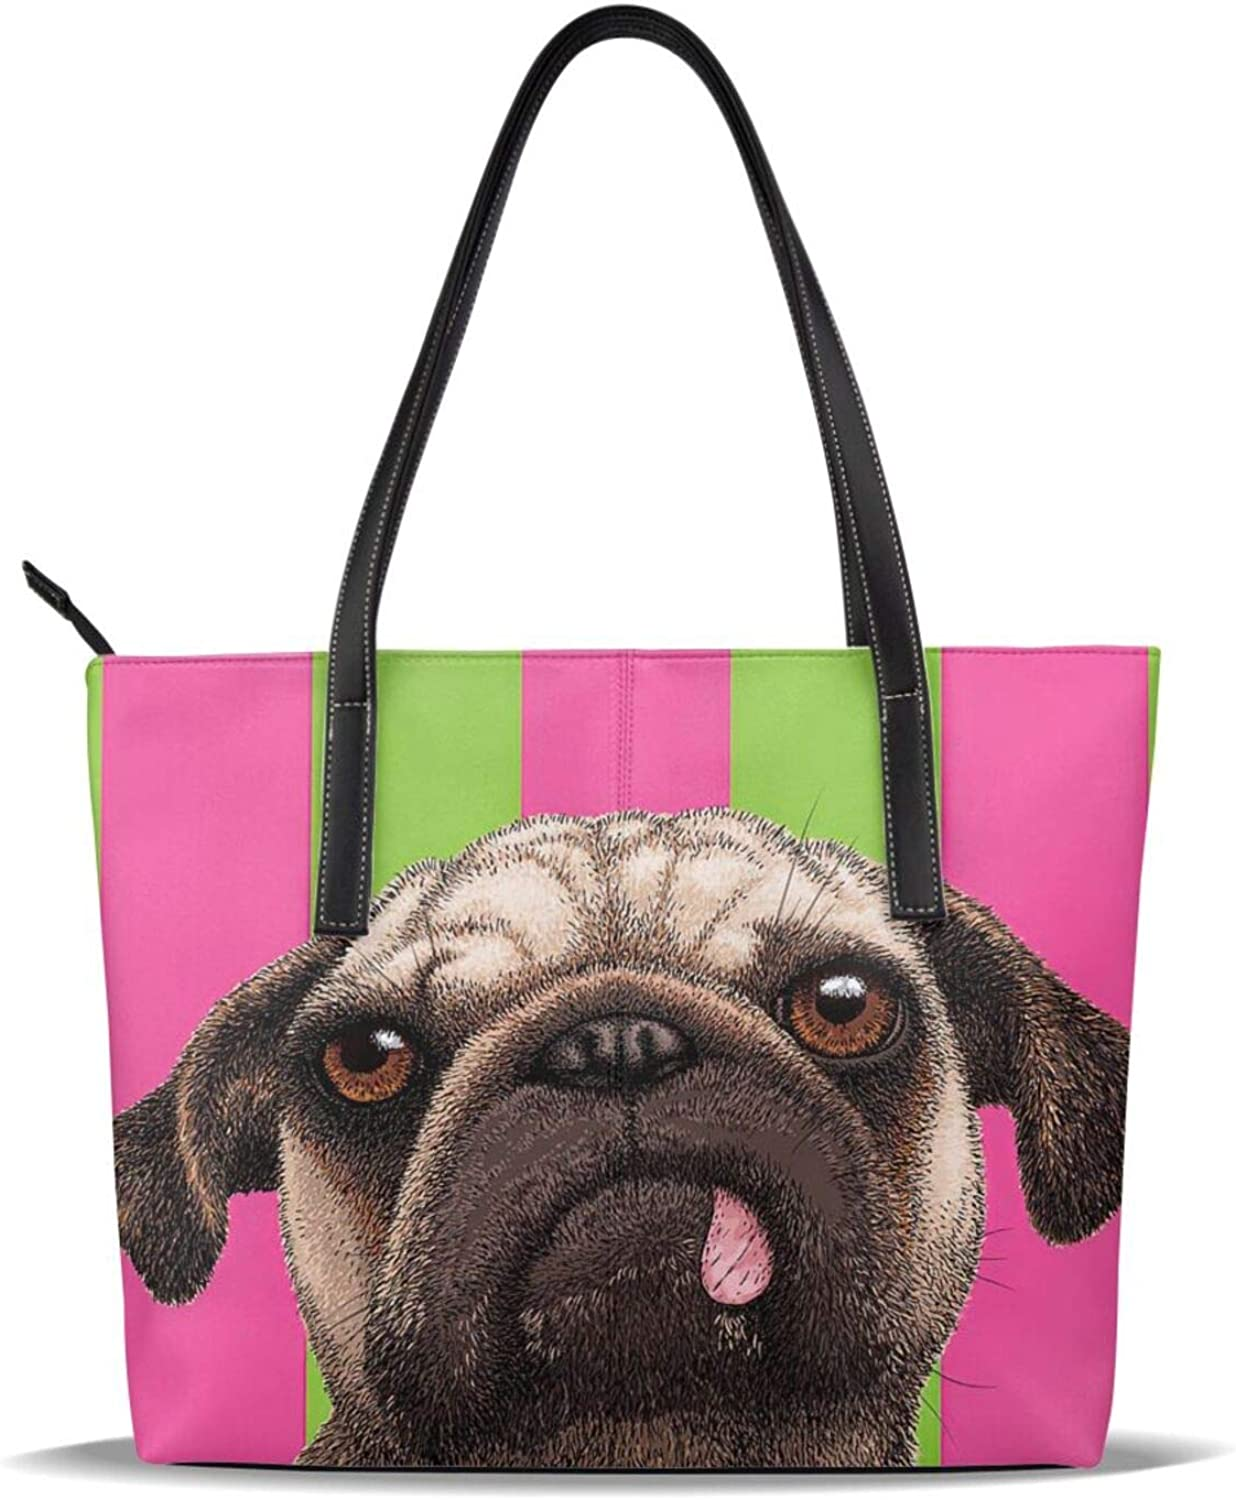 depot Cool Funny Pug Dog Green And Latest item Pat Stripes Pu Leather Printed Pink